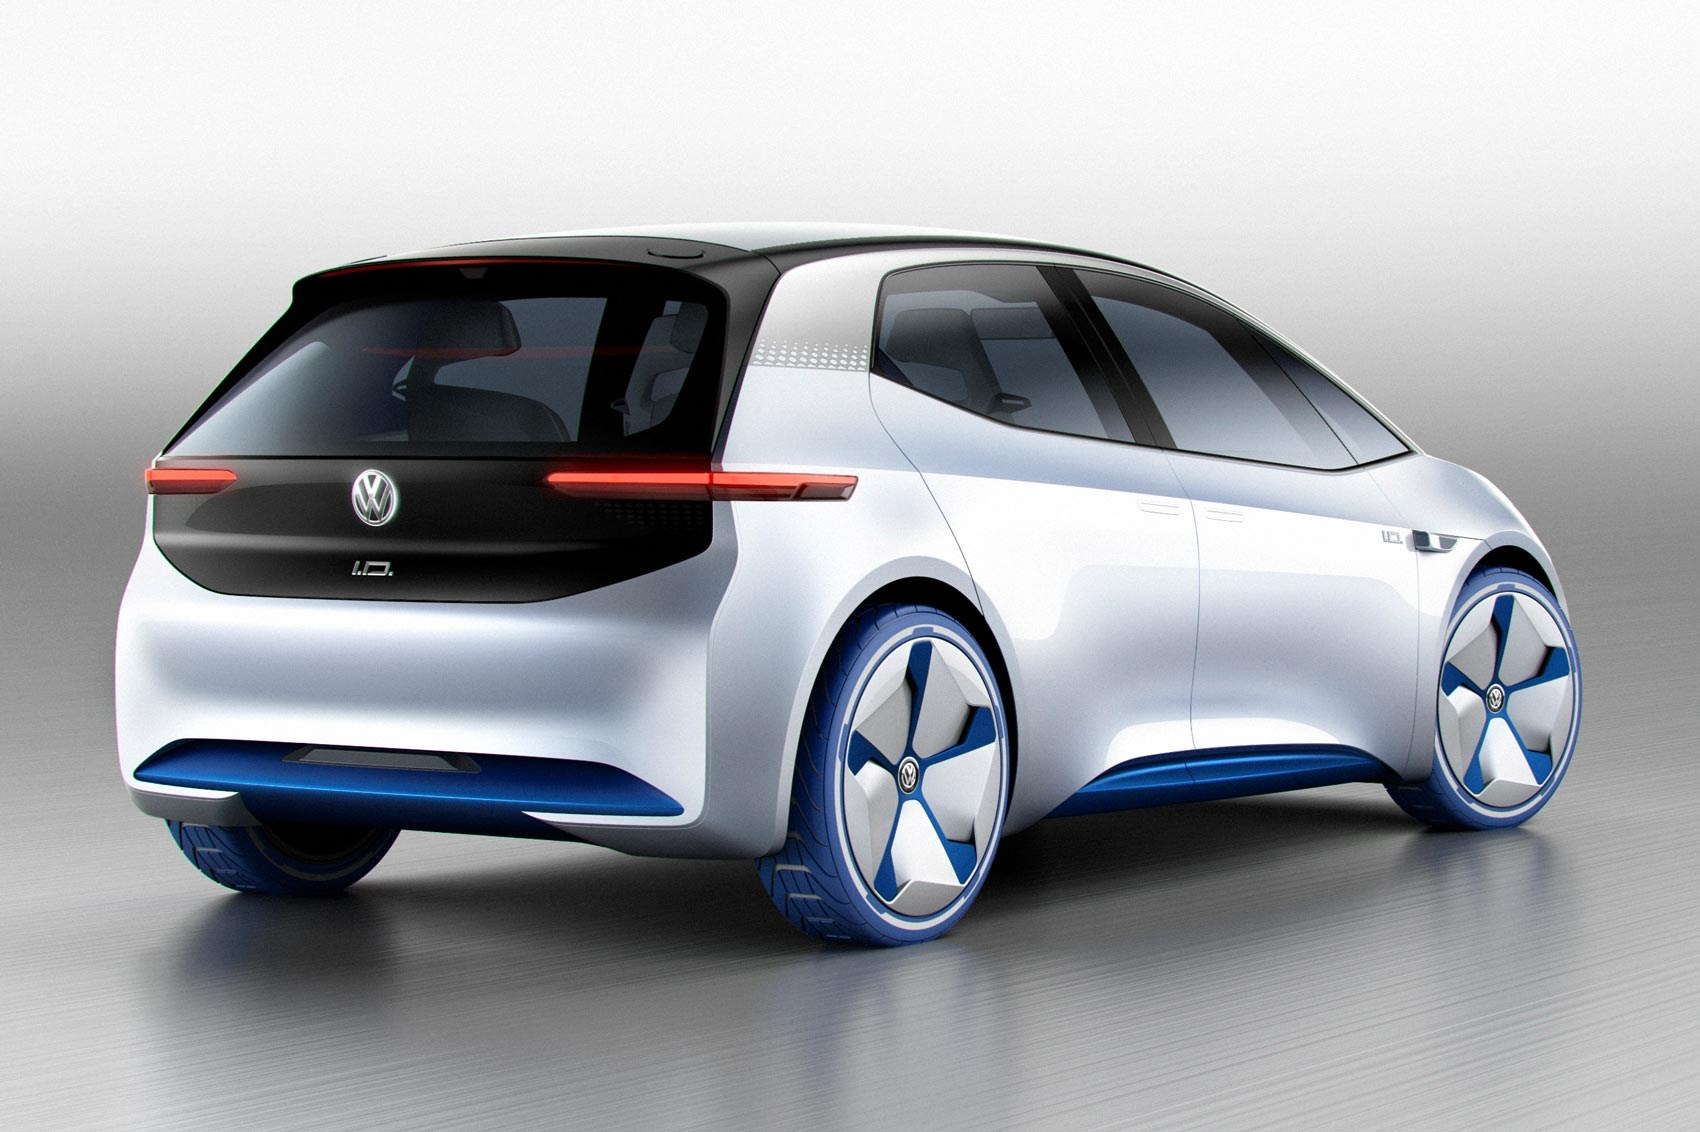 Visionary I.D. Heralds VW's All-electric Future